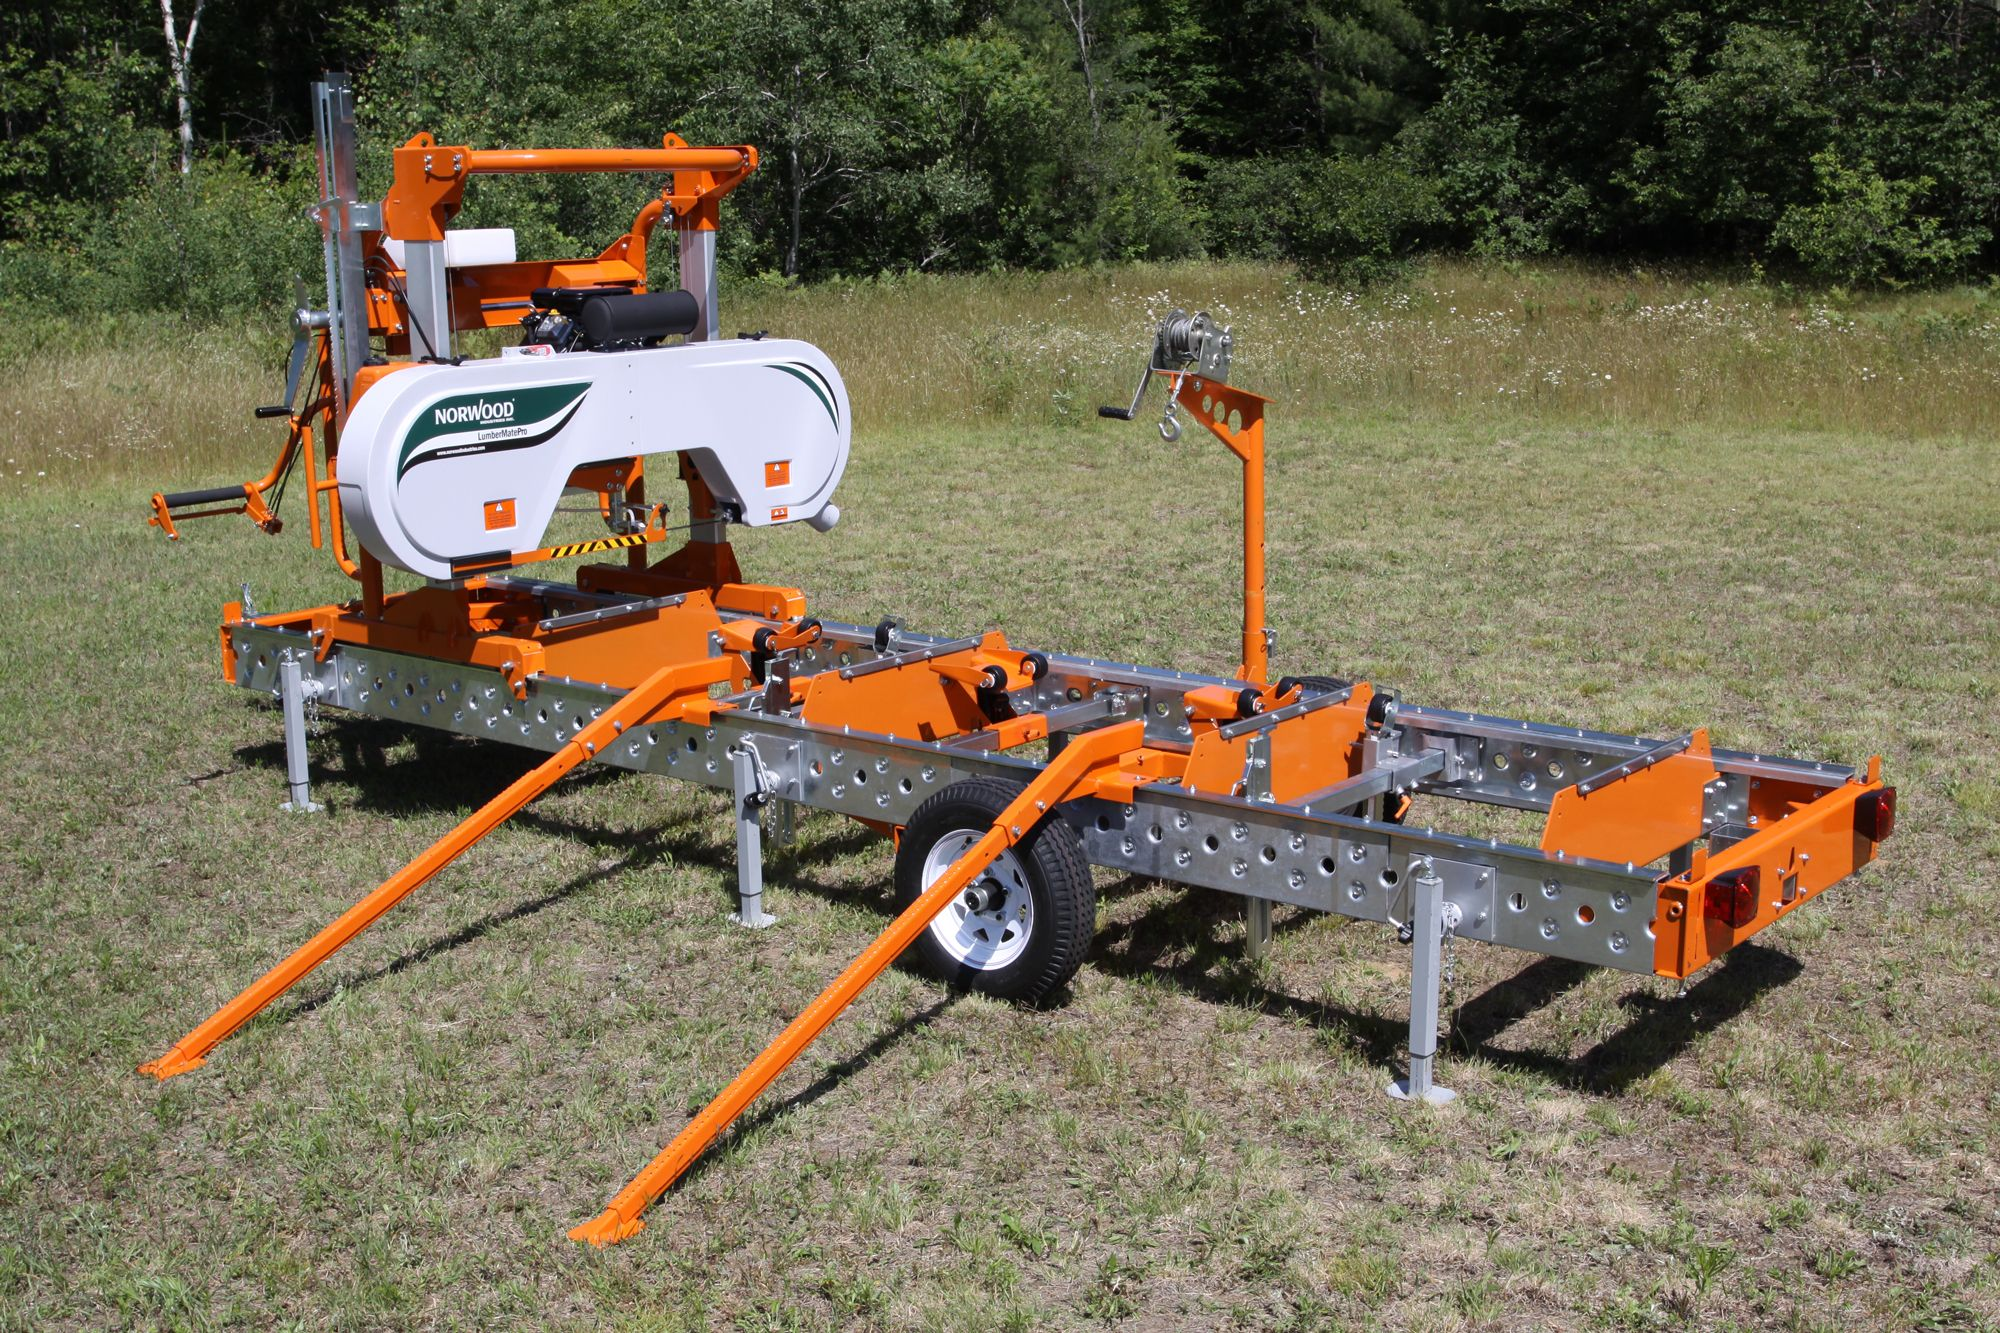 woodland mills hm126 portable sawmill promotional video the